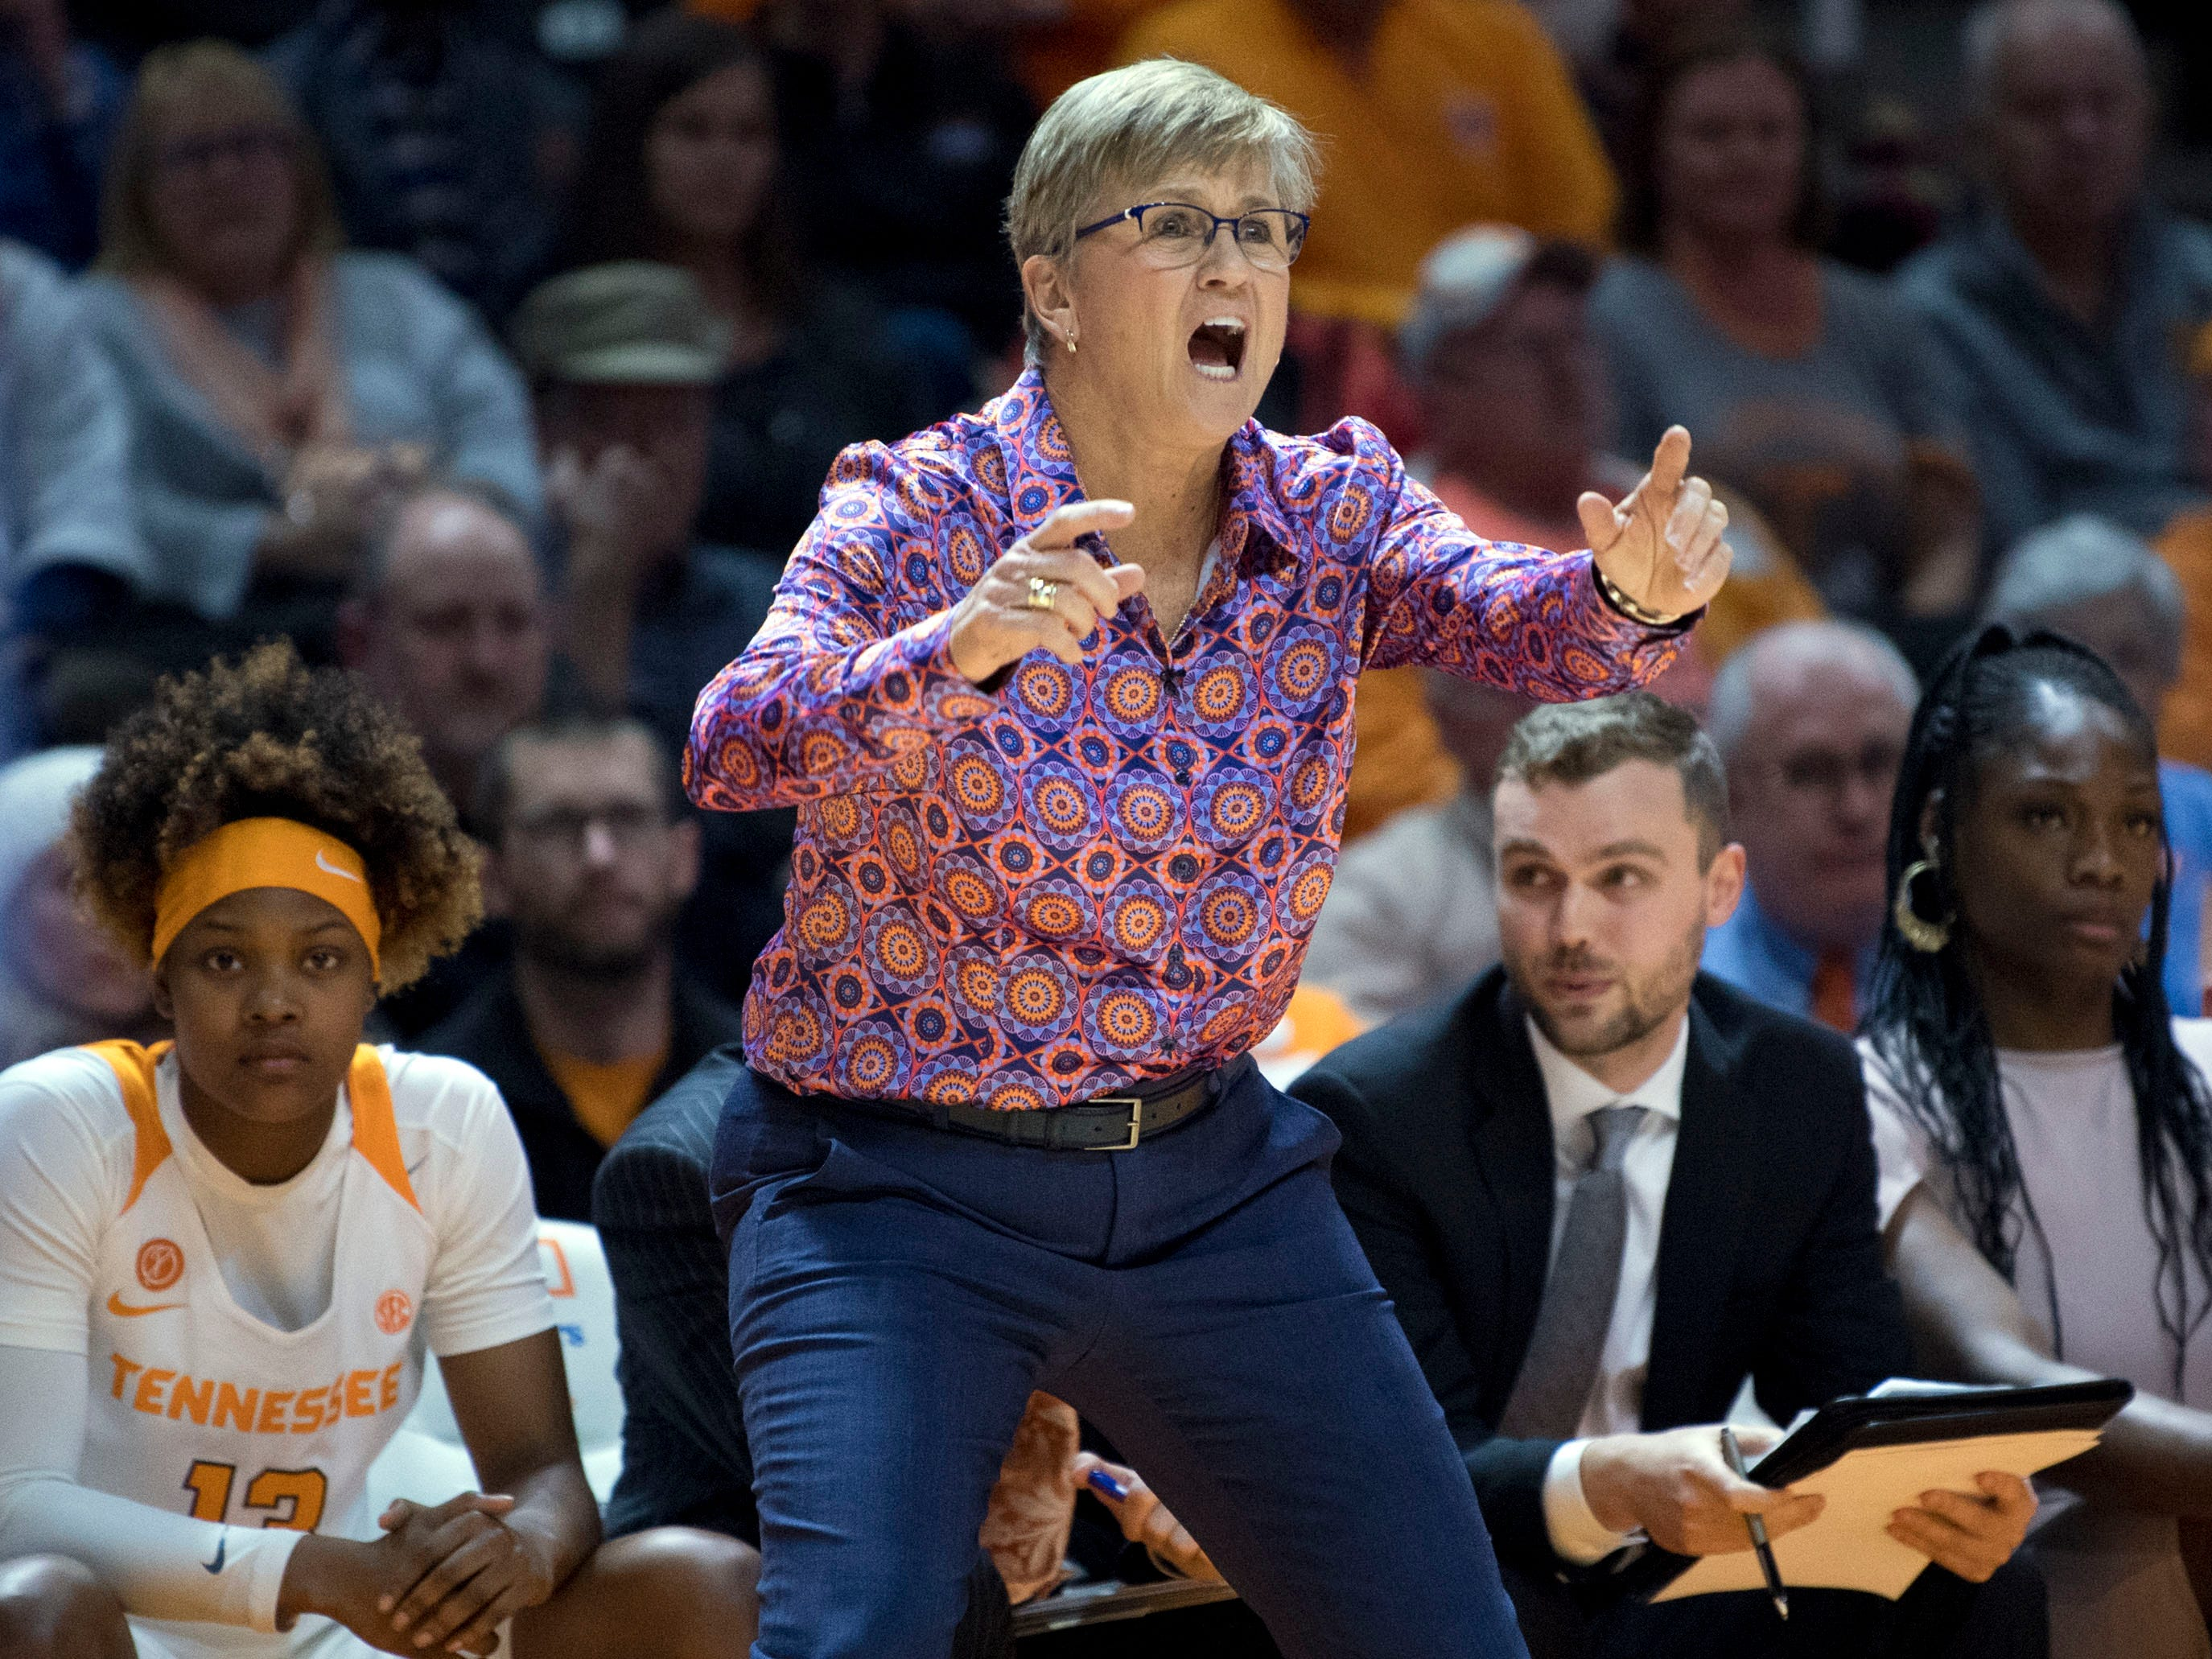 Tennessee women's basketball coach Holly Warlick yells out directions to her team during the game against Kentucky on Thursday, January 10, 2019.